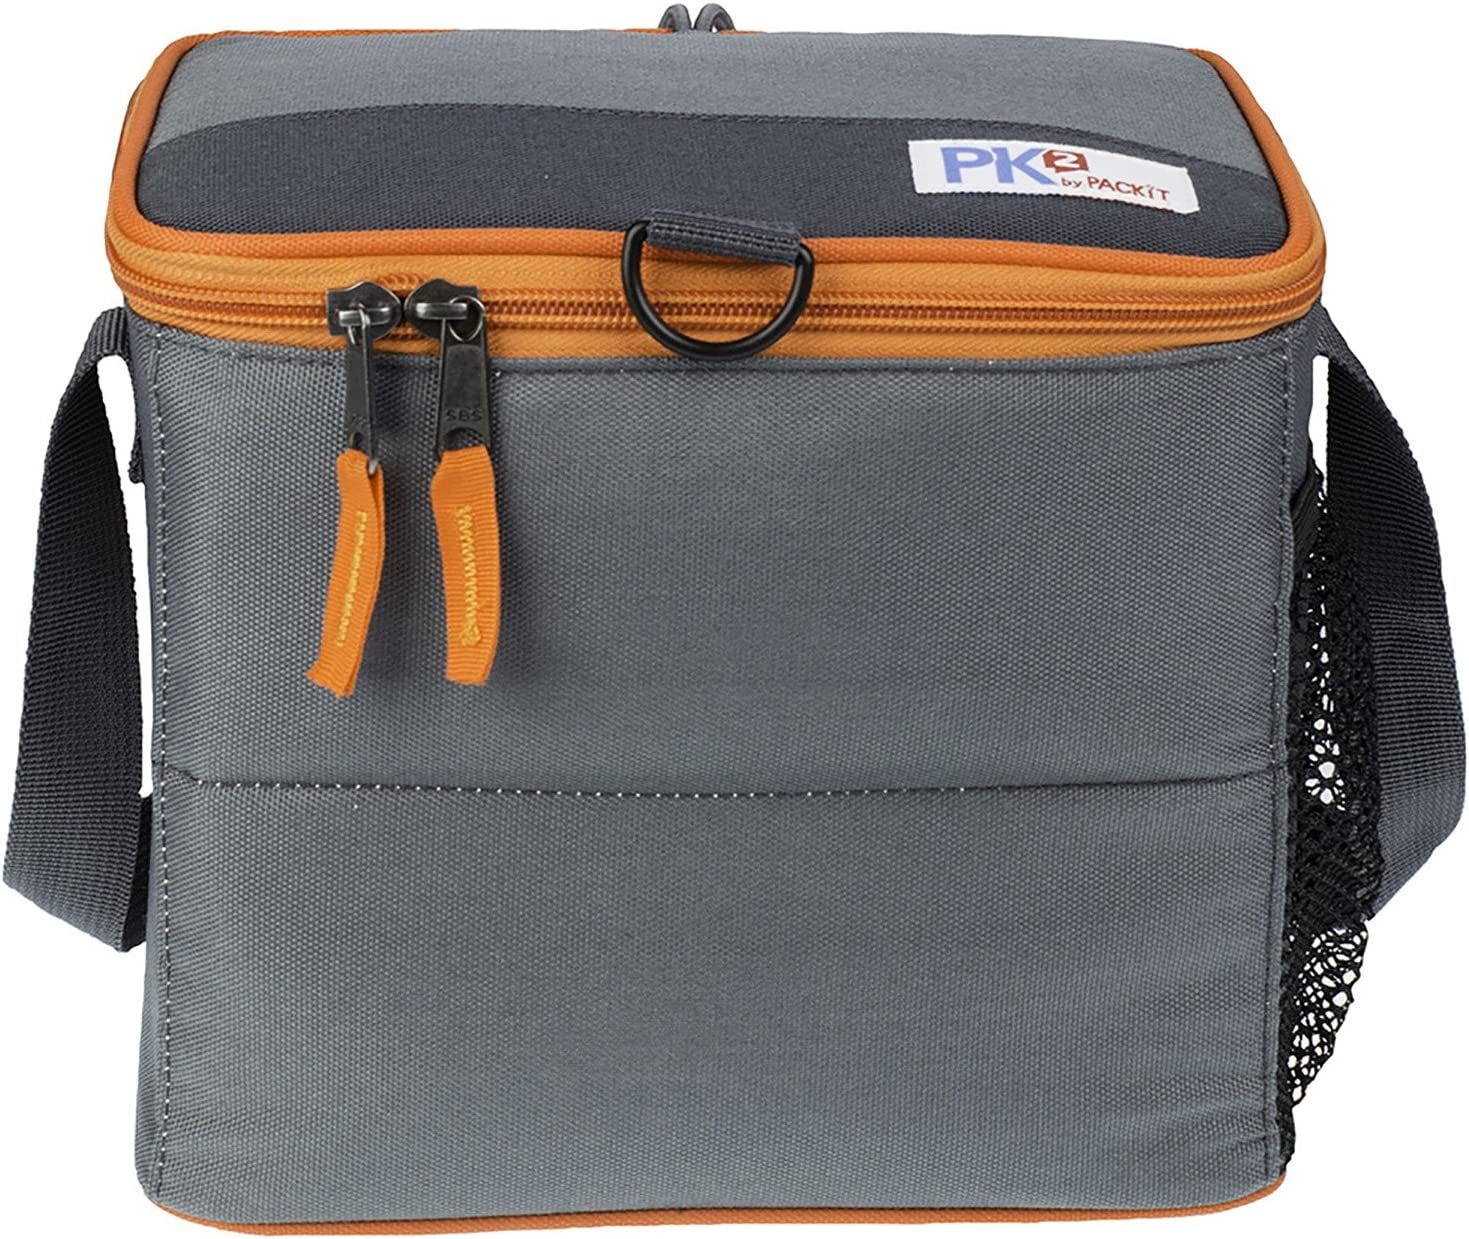 PK2 PK2-CC-GRY PackIt Foldable, Freezable Gray 6-Cans Beverage & Food Cooler, One Size